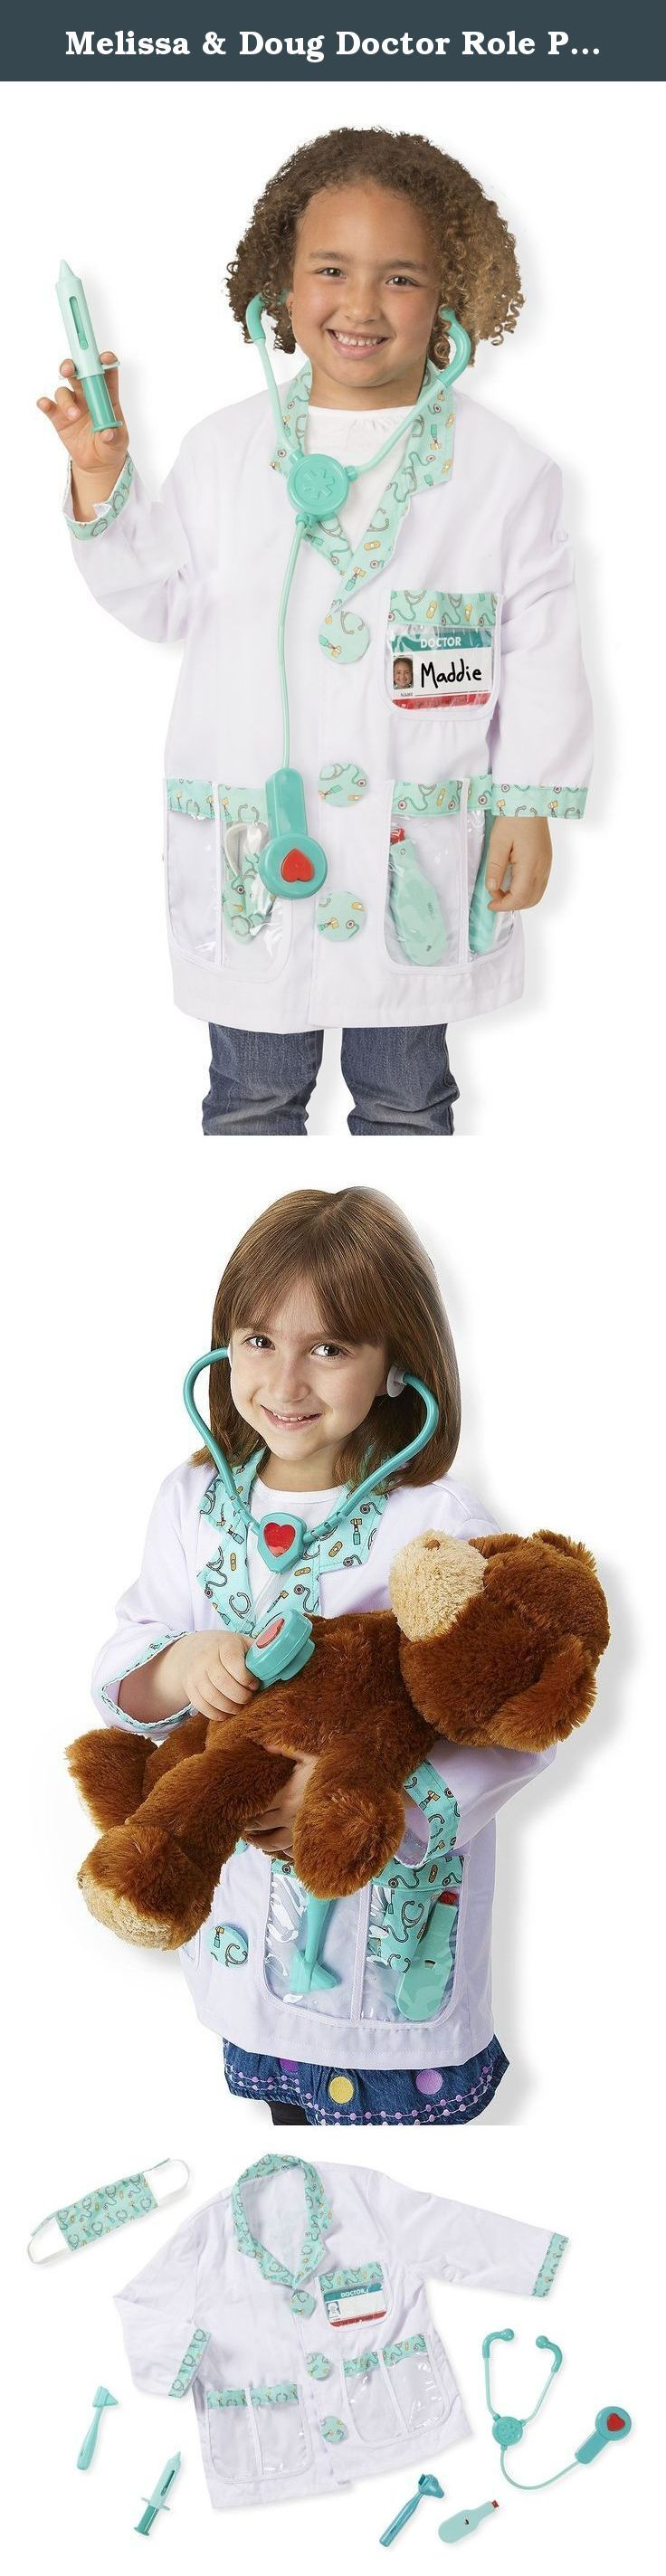 Melissa & Doug Doctor Role Play Costume Dress-Up Set (7 pcs). The doctor will see you now! Equip your little doctor with this realistic role-play set, complete with five sturdy plastic tools for pretend-play checkups. The machine-washable jacket features see-through pockets for the reusable plastic name tag and tools: reflex hammer, thermometer, ear scope, syringe and stethoscope with sound effects!.